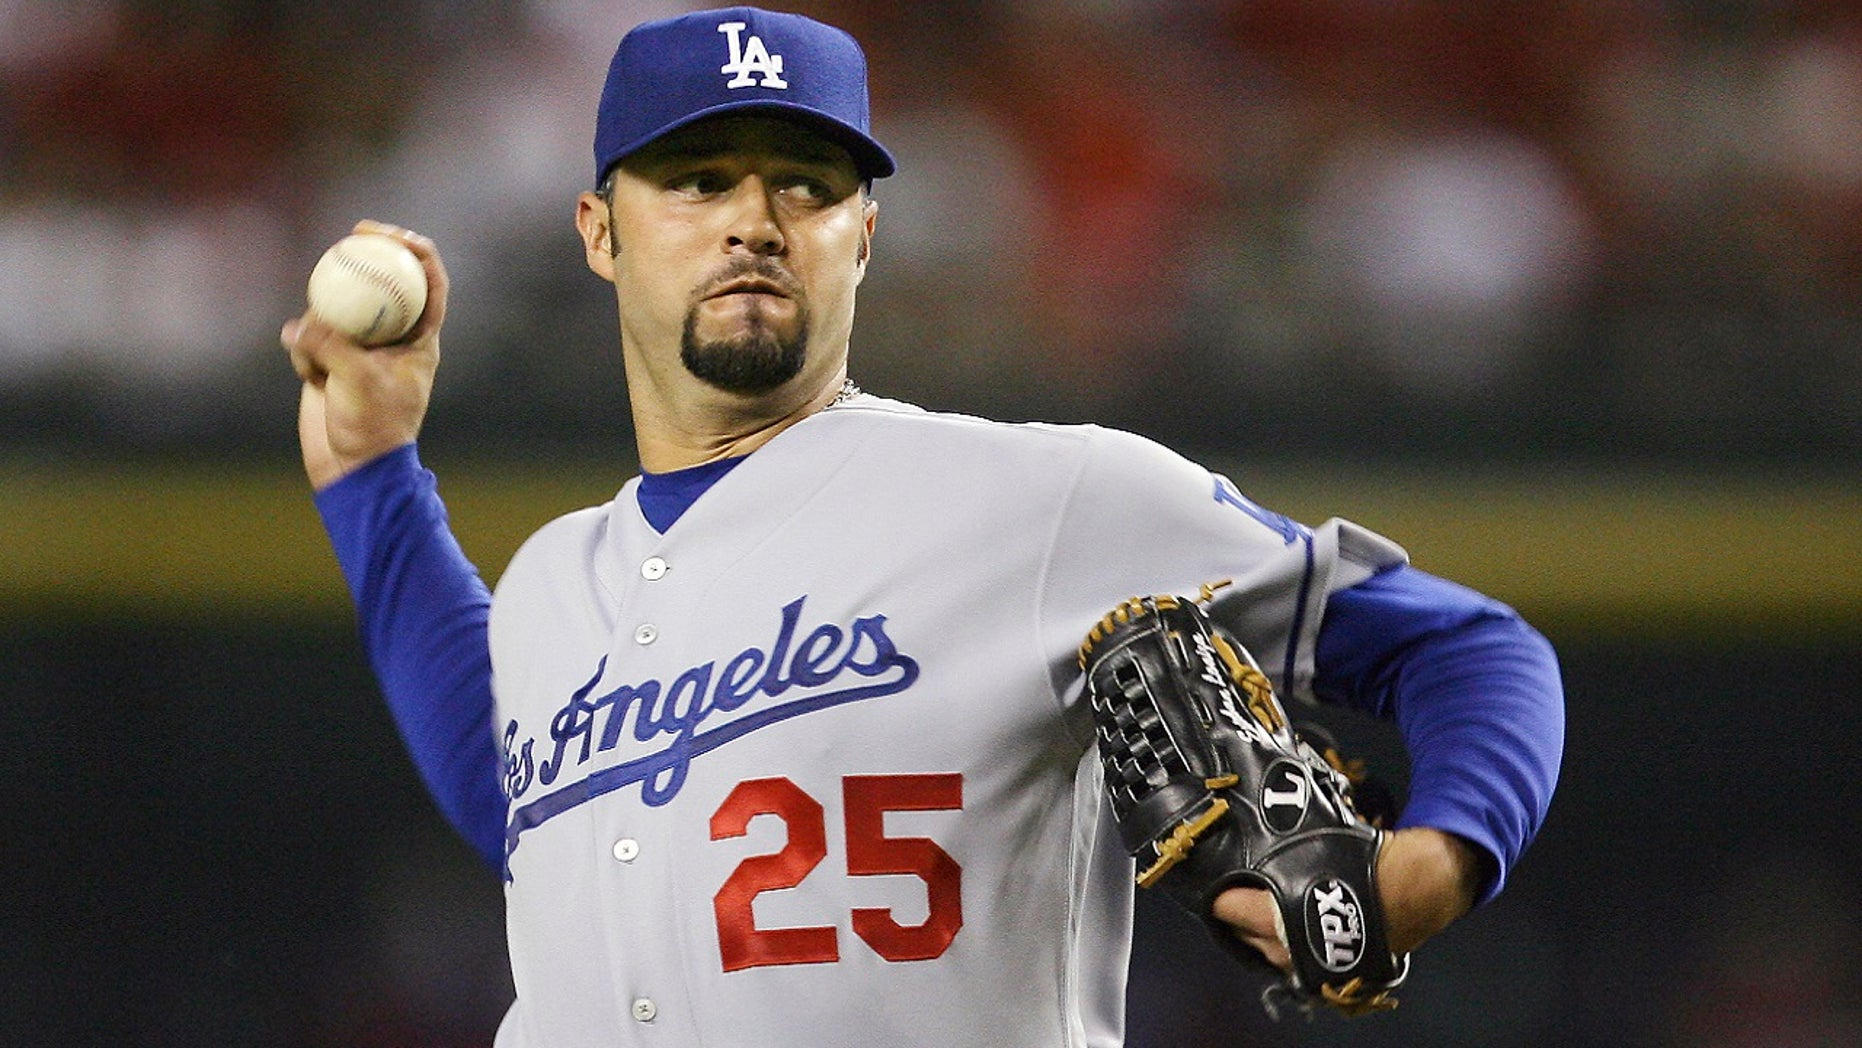 FILE Sept. 21, 2007: Los Angeles Dodgers' Esteban Loaiza, of Mexico, throws a pitch against the Arizona Diamondbacks in the first inning of a baseball game in Phoenix. Former All-Star pitcher Loaiza - who earned a total of more than $43 million over 14 seasons - is heading to court accused of drug dealing involving 20 kilograms (44 pounds) of suspected cocaine. The 46-year-old retired Major League Baseball player is scheduled to appear in court in Chula Vista, Calif., south of San Diego, on Wednesday, Feb. 14, 2018.